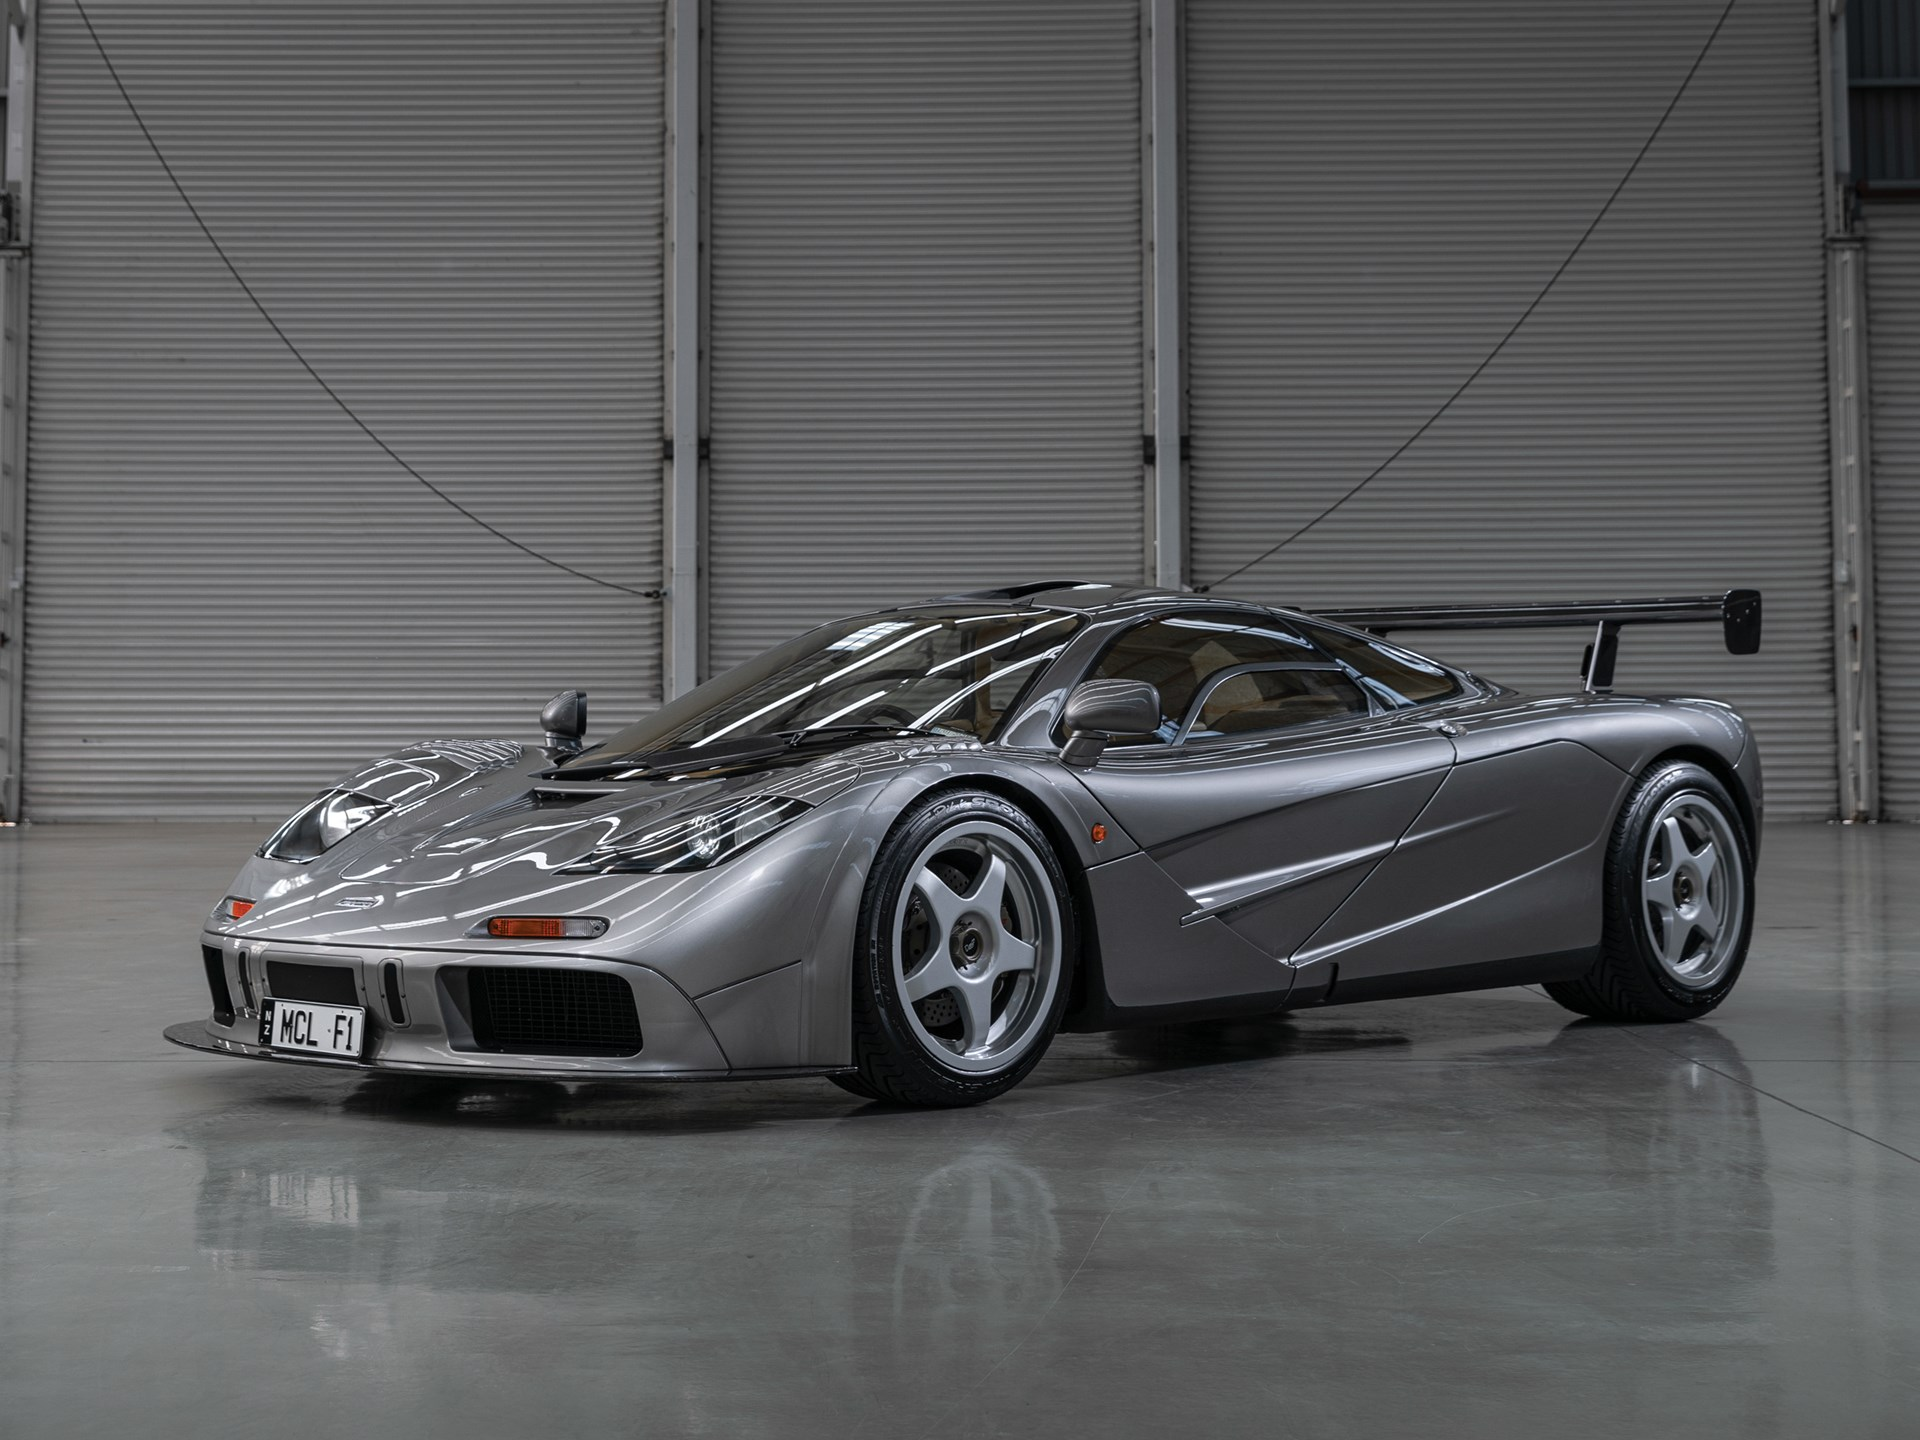 RM Sotheby's - 1994 McLaren F1 'LM-Specification' | Monterey